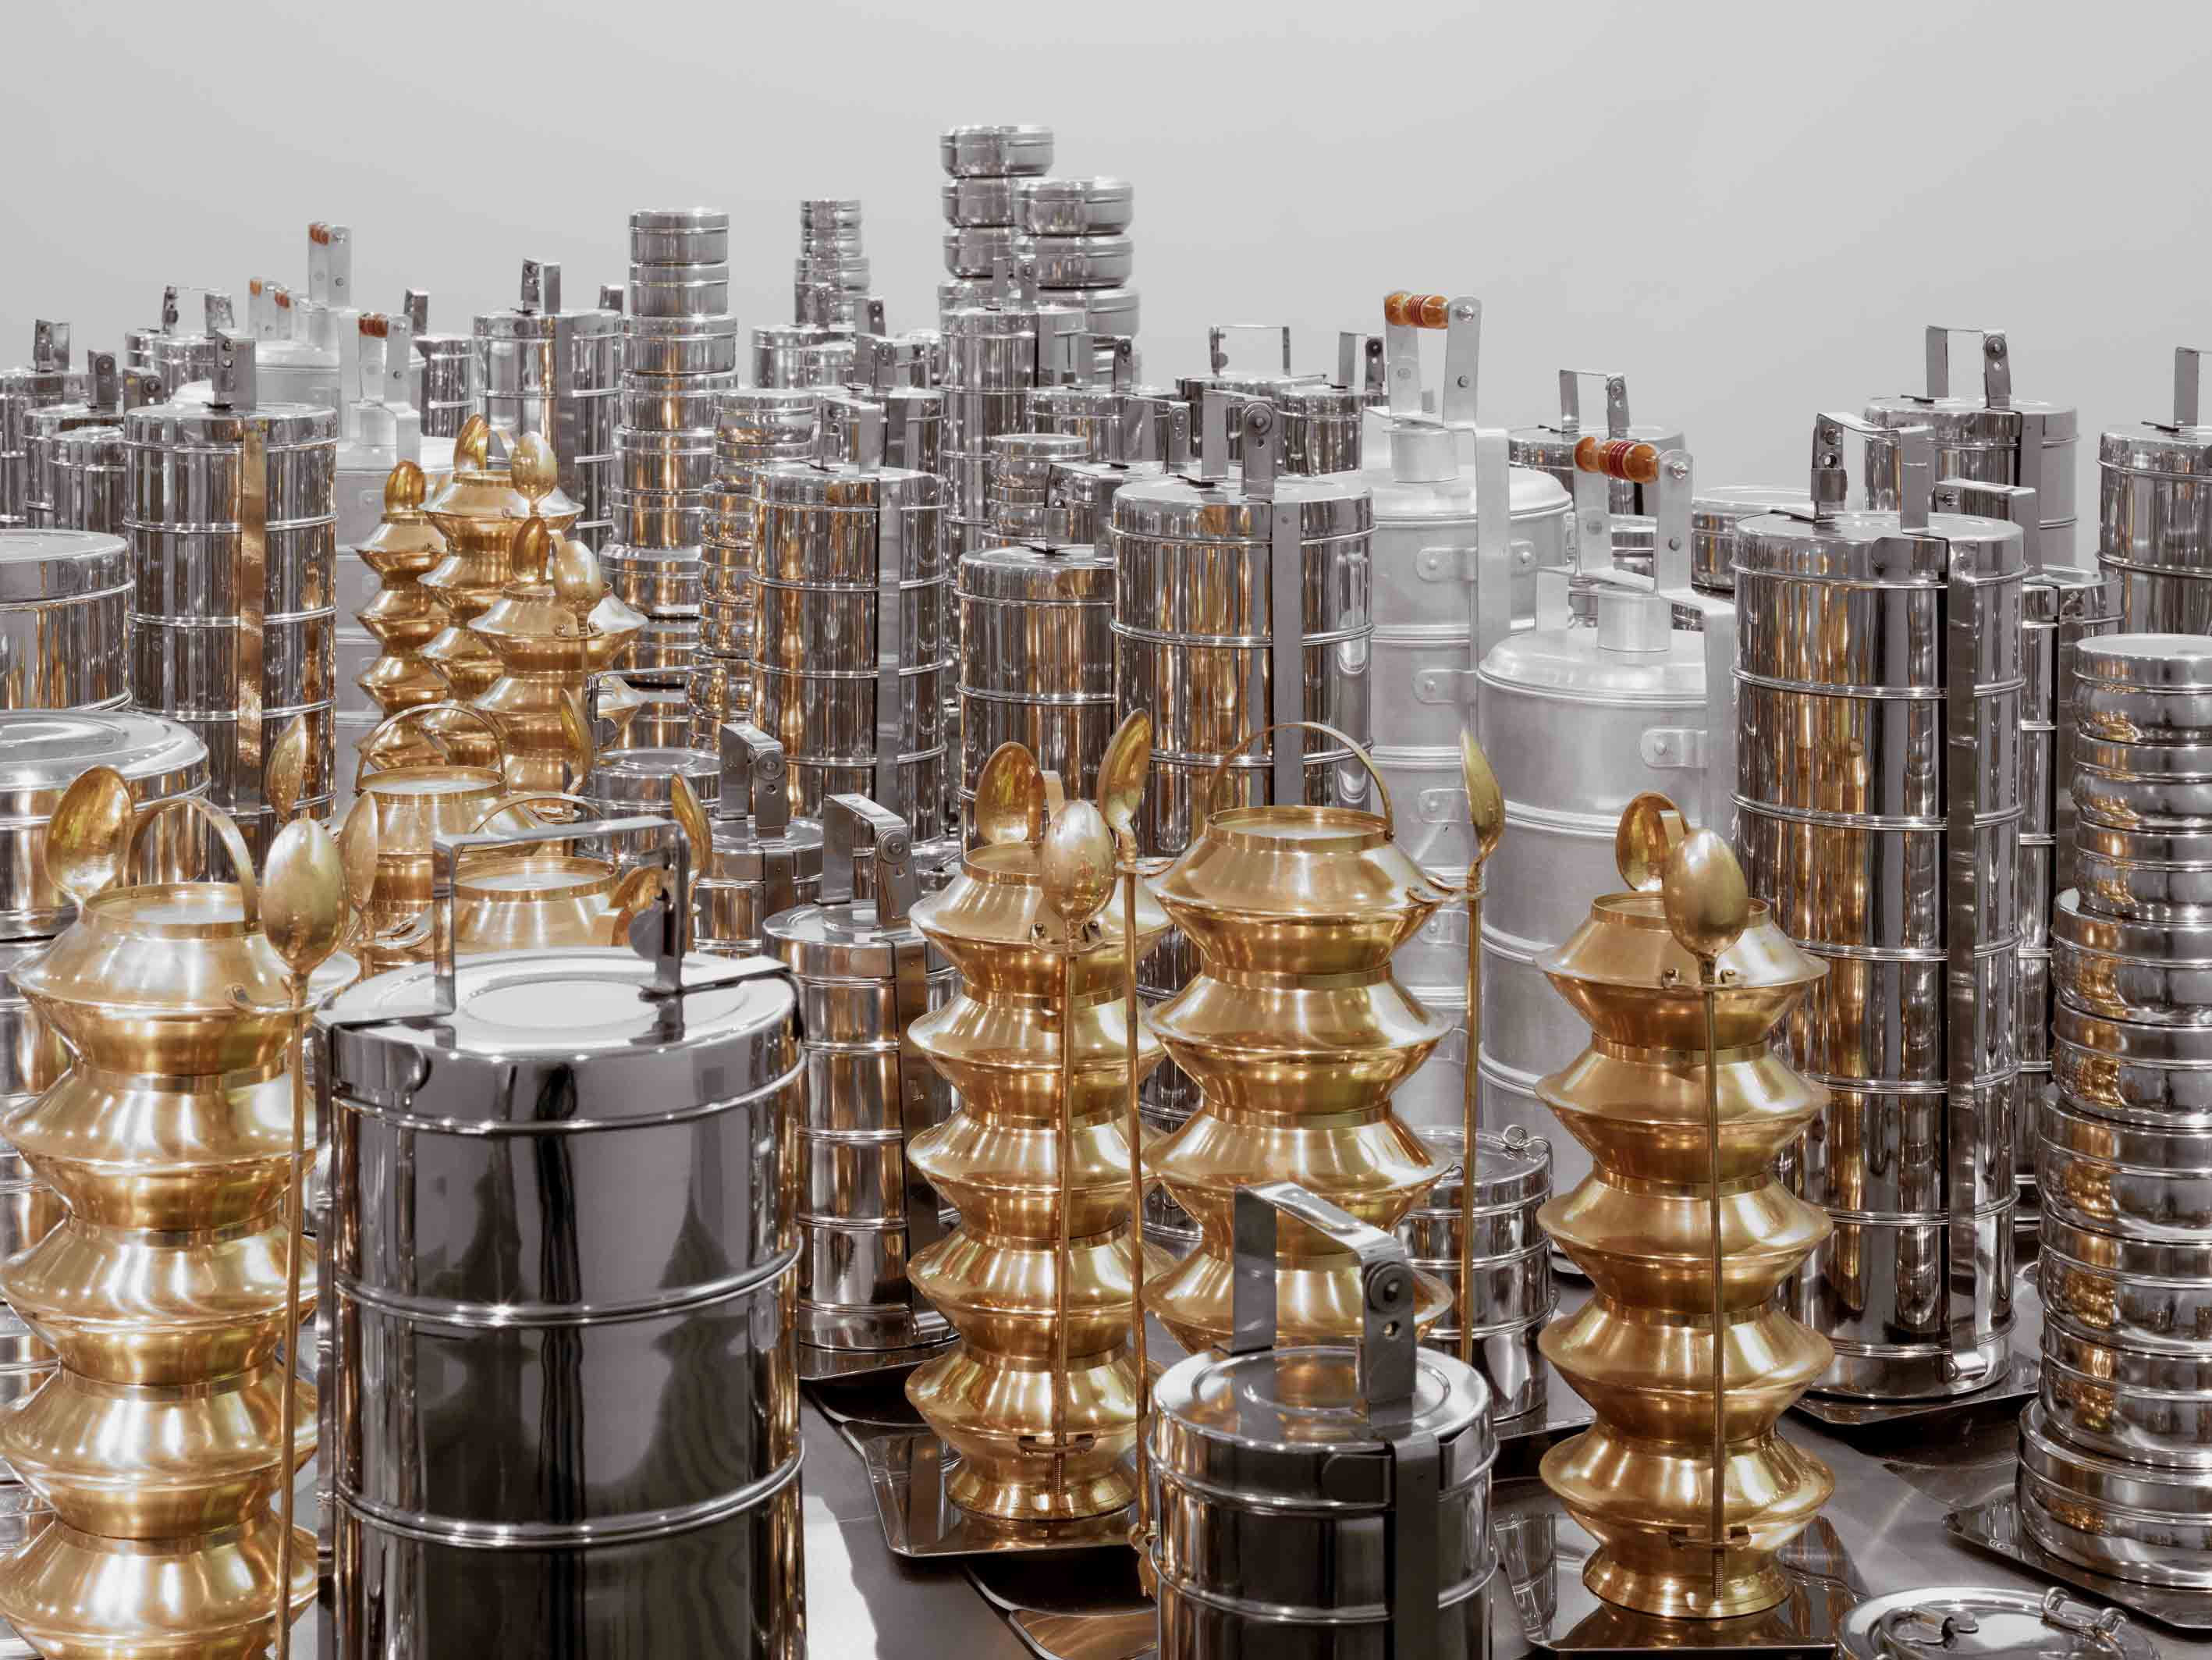 Subodh Gupta Faith Matters, 2007-2010 Courtesy of the artist and Hauser & Wirth Stefan Altenburger Photography Zürich